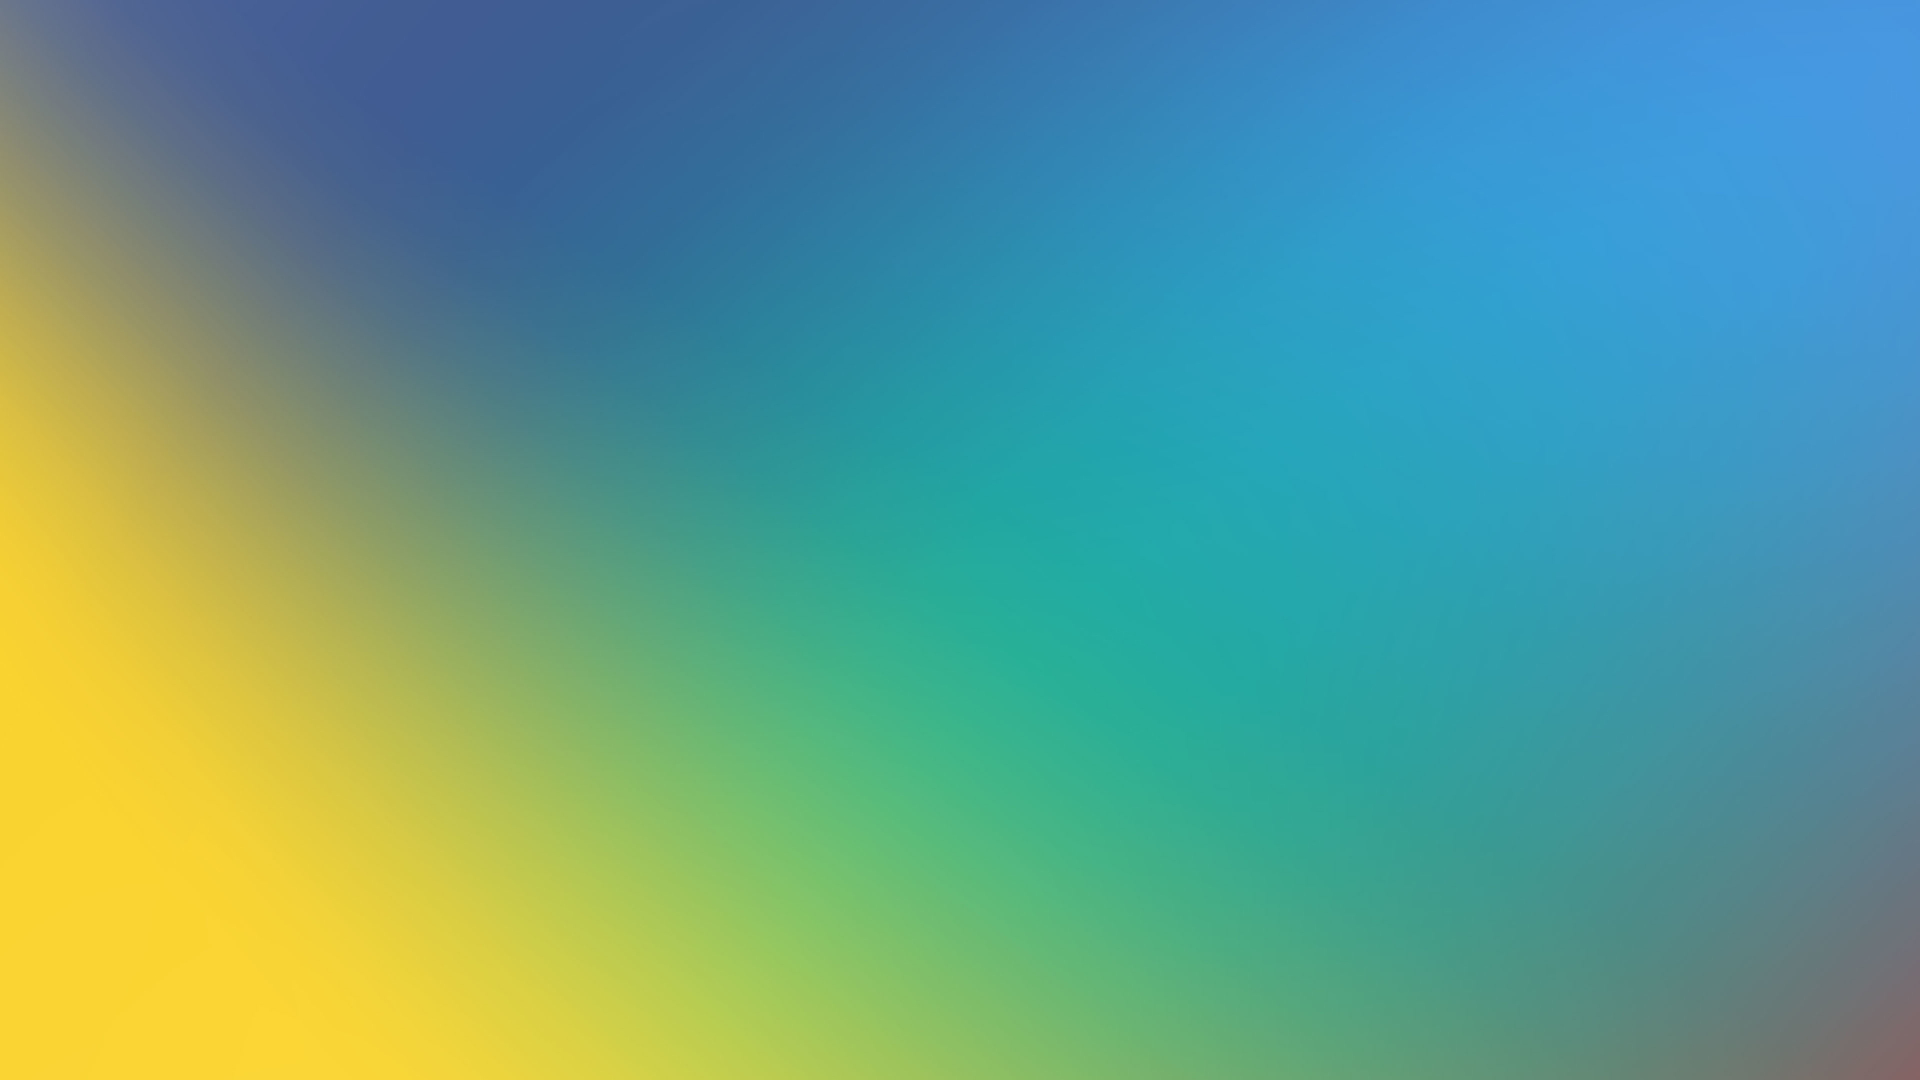 Download 1920x1080 Wallpaper Blue Yellow Gradient Abstract